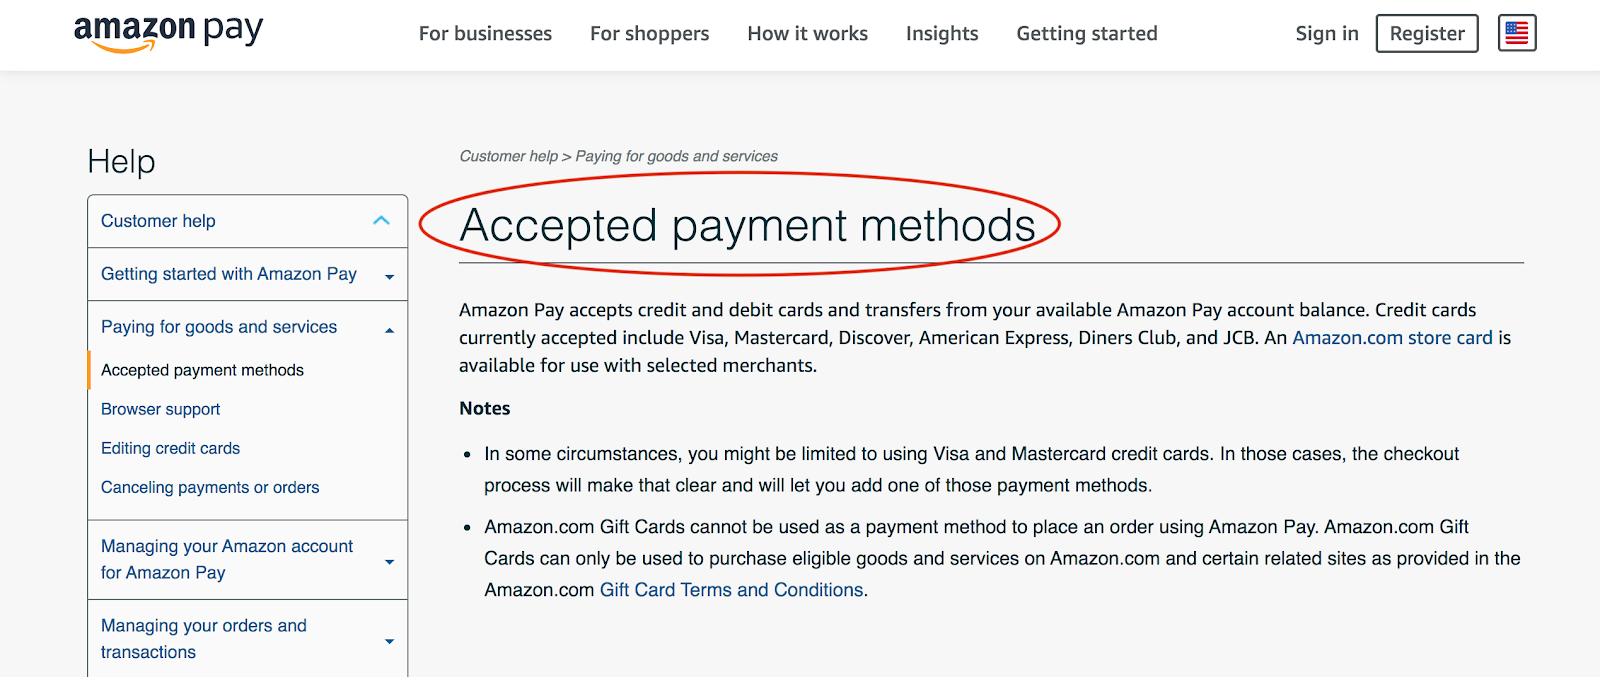 Screenshot showing the simple and effective design that Amazon's online store has.